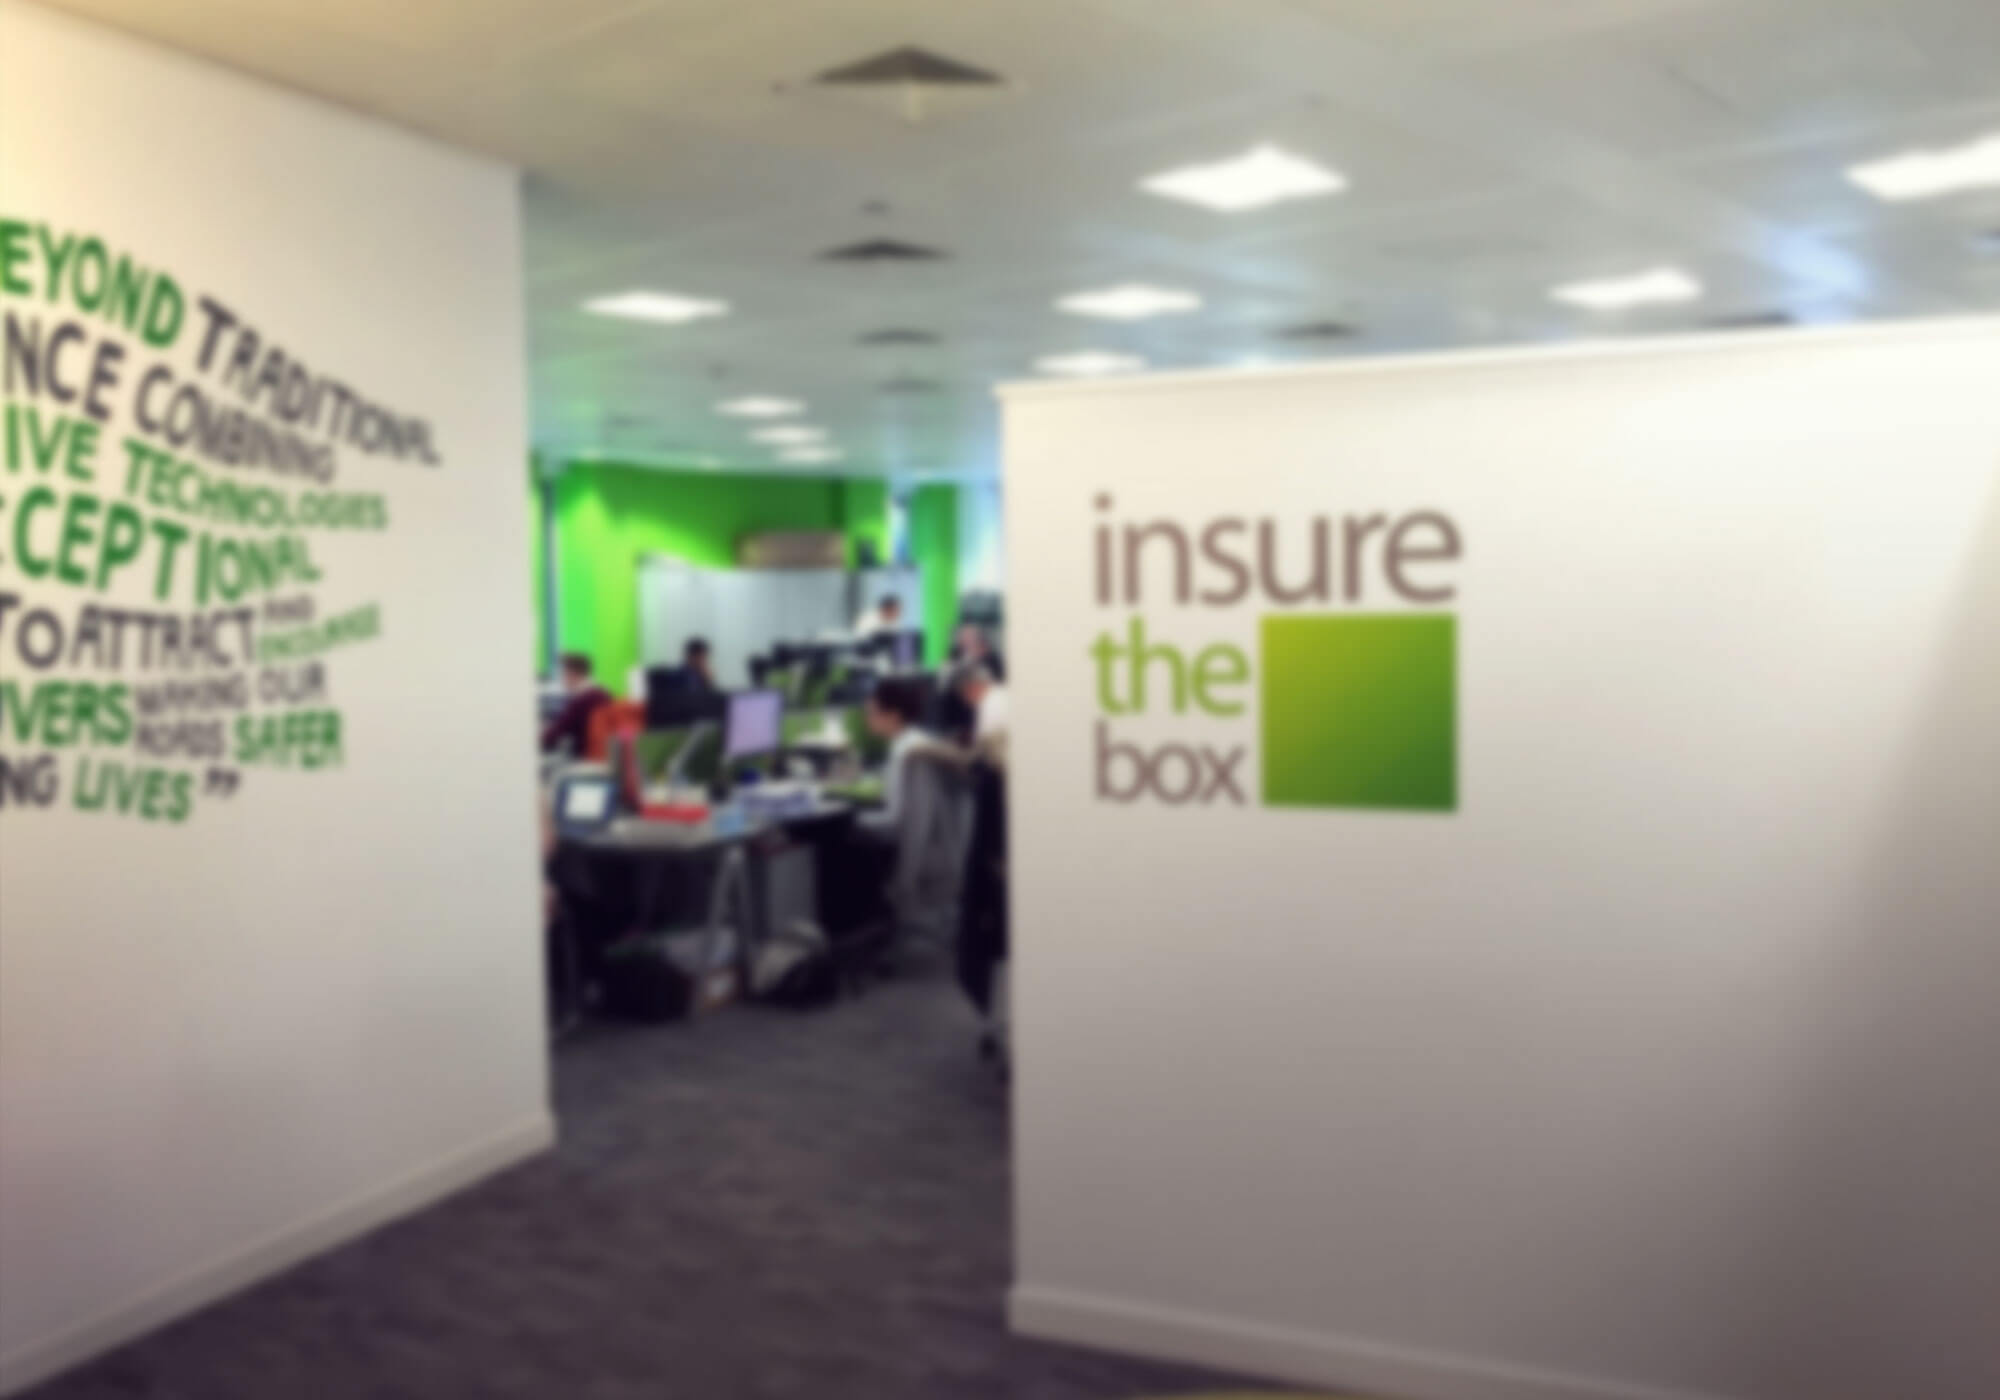 working at insurethebox